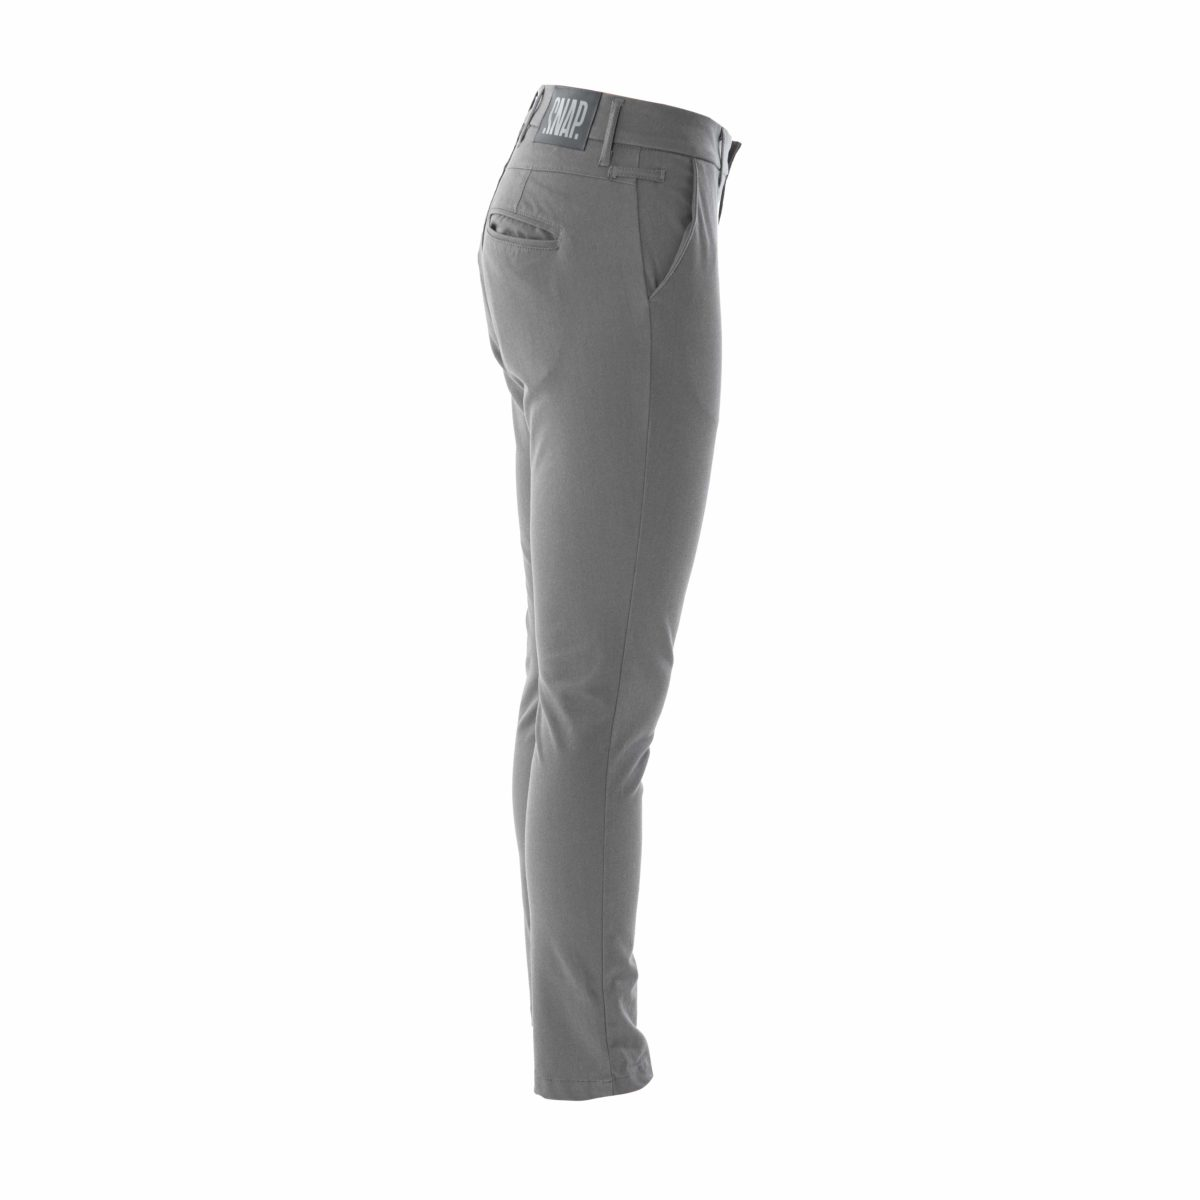 grey chino pants eco-friendly